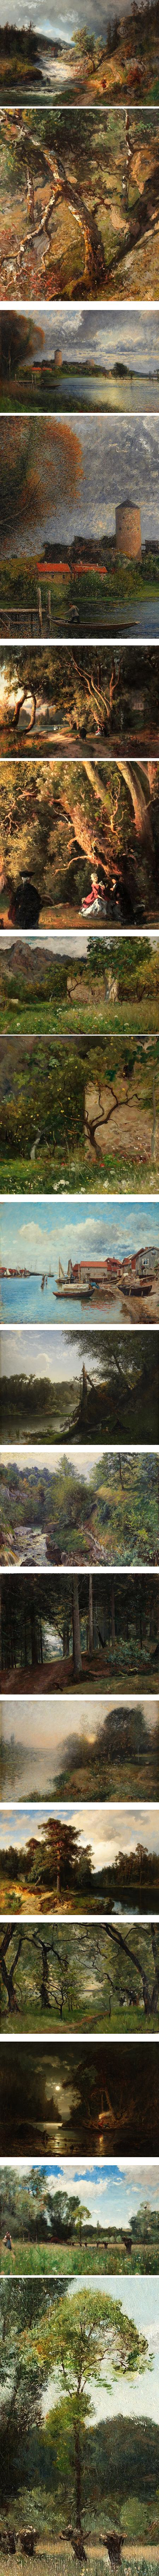 Alfred Wahlberg, Swedish landscape painter